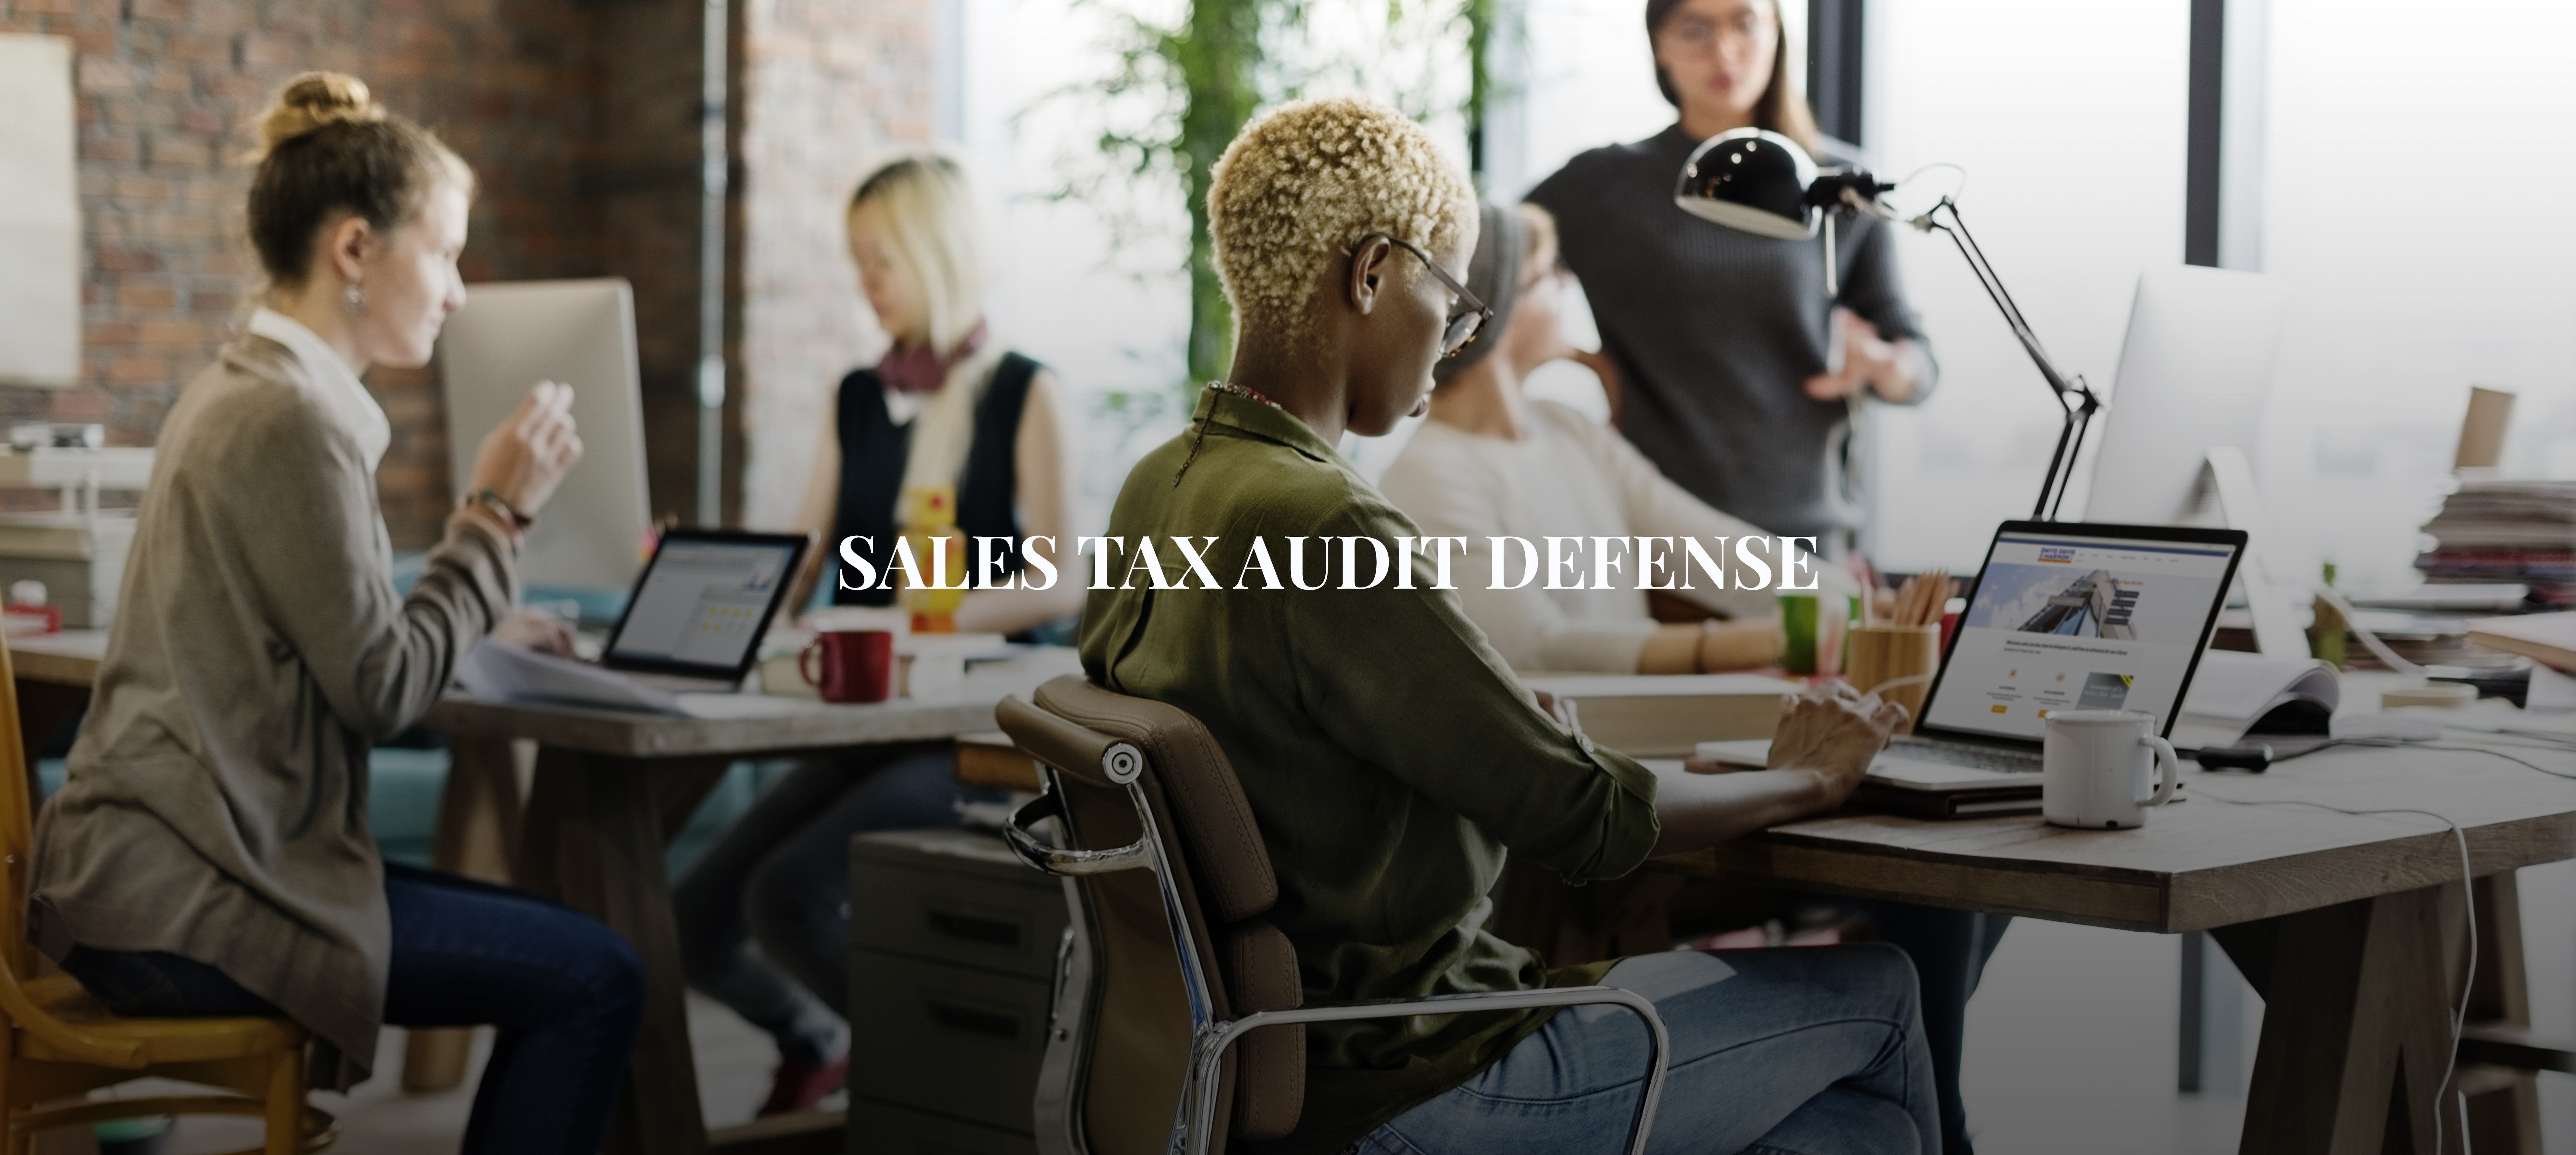 Sales Tax Audit Defense Consultants and Experts at DDH Tax